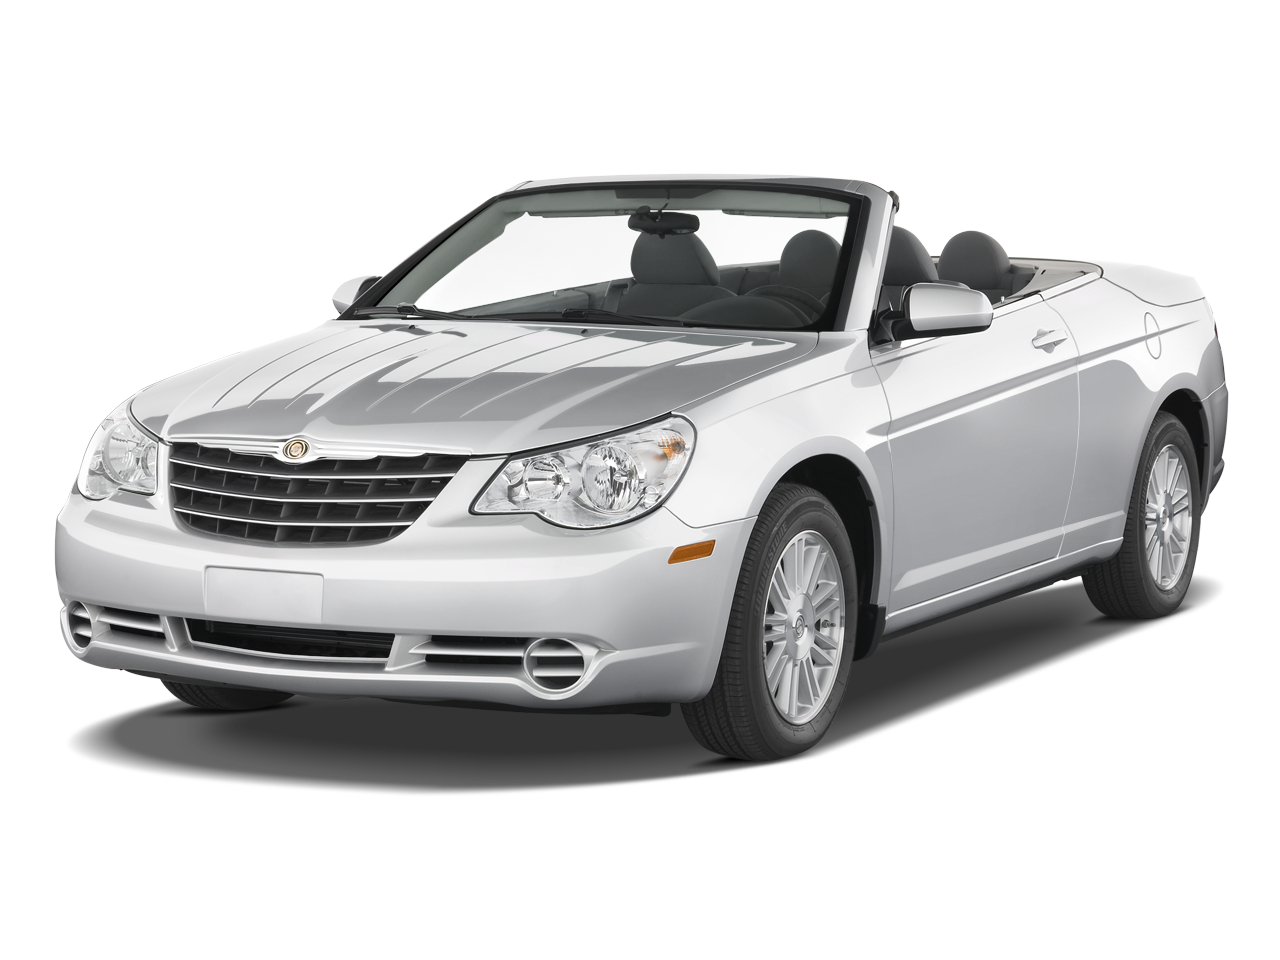 2007 chrysler sebring convertible new cars trucks and suv road tests and drivens. Black Bedroom Furniture Sets. Home Design Ideas